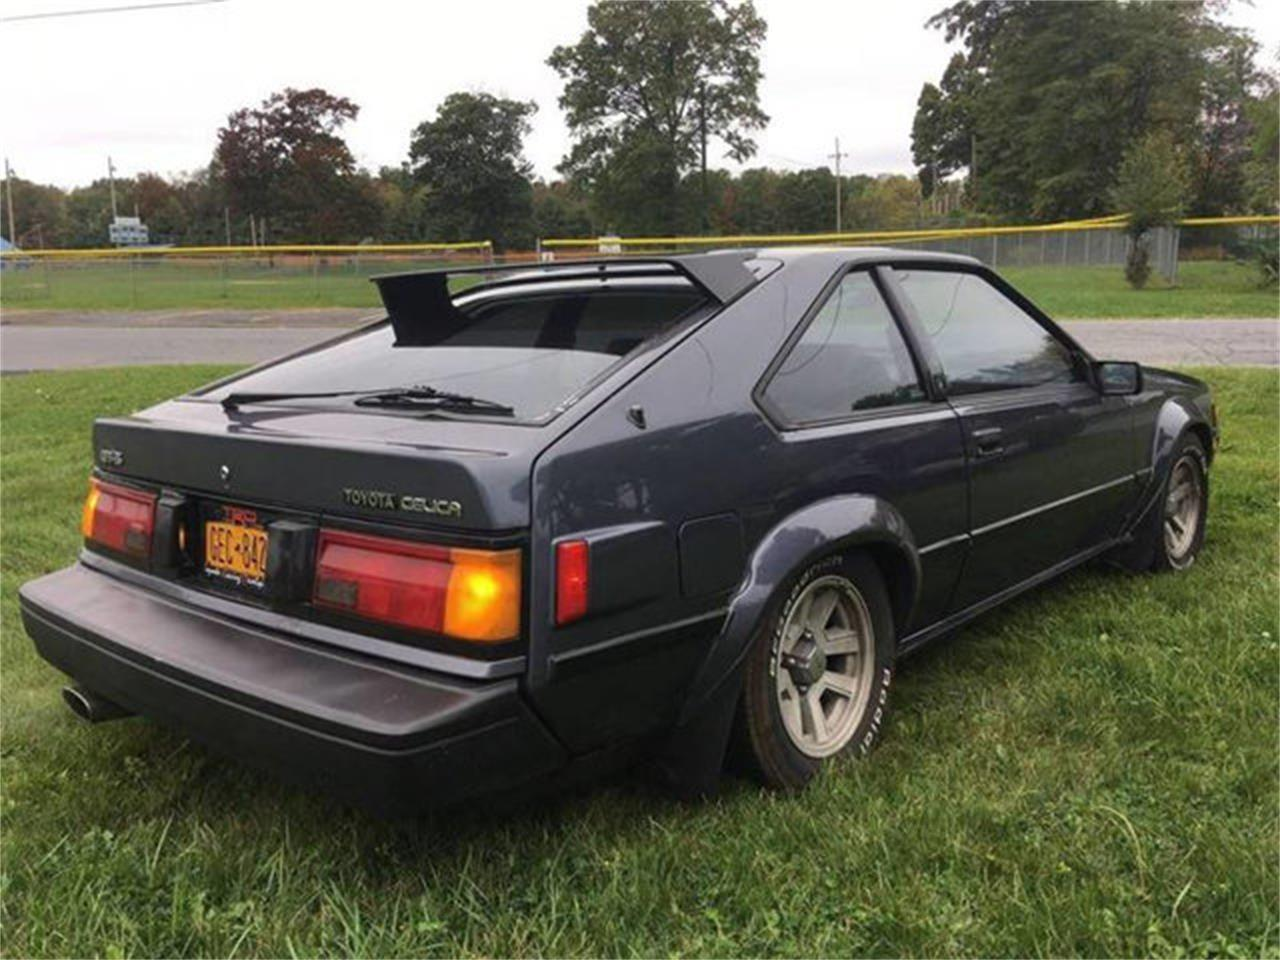 Large Picture of 1985 Toyota Celica located in Long Island New York - $6,000.00 - QWAT